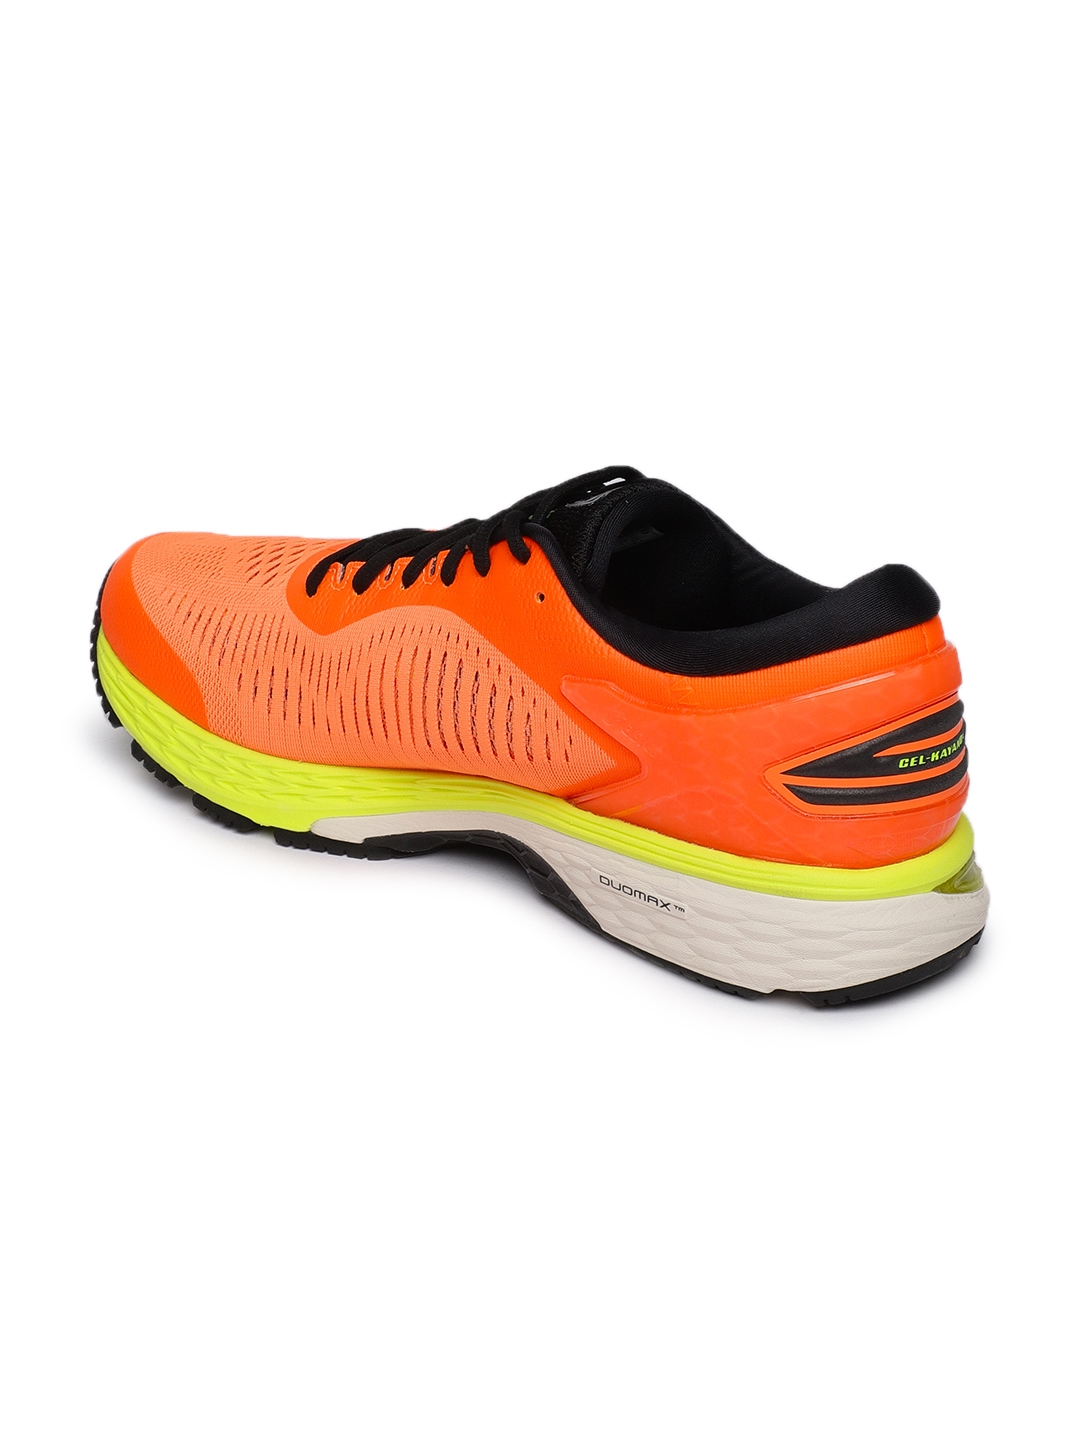 a5f88a7231 Buy ASICS Men Orange GEL KAYANO 25 Running Shoes - Sports Shoes for ...